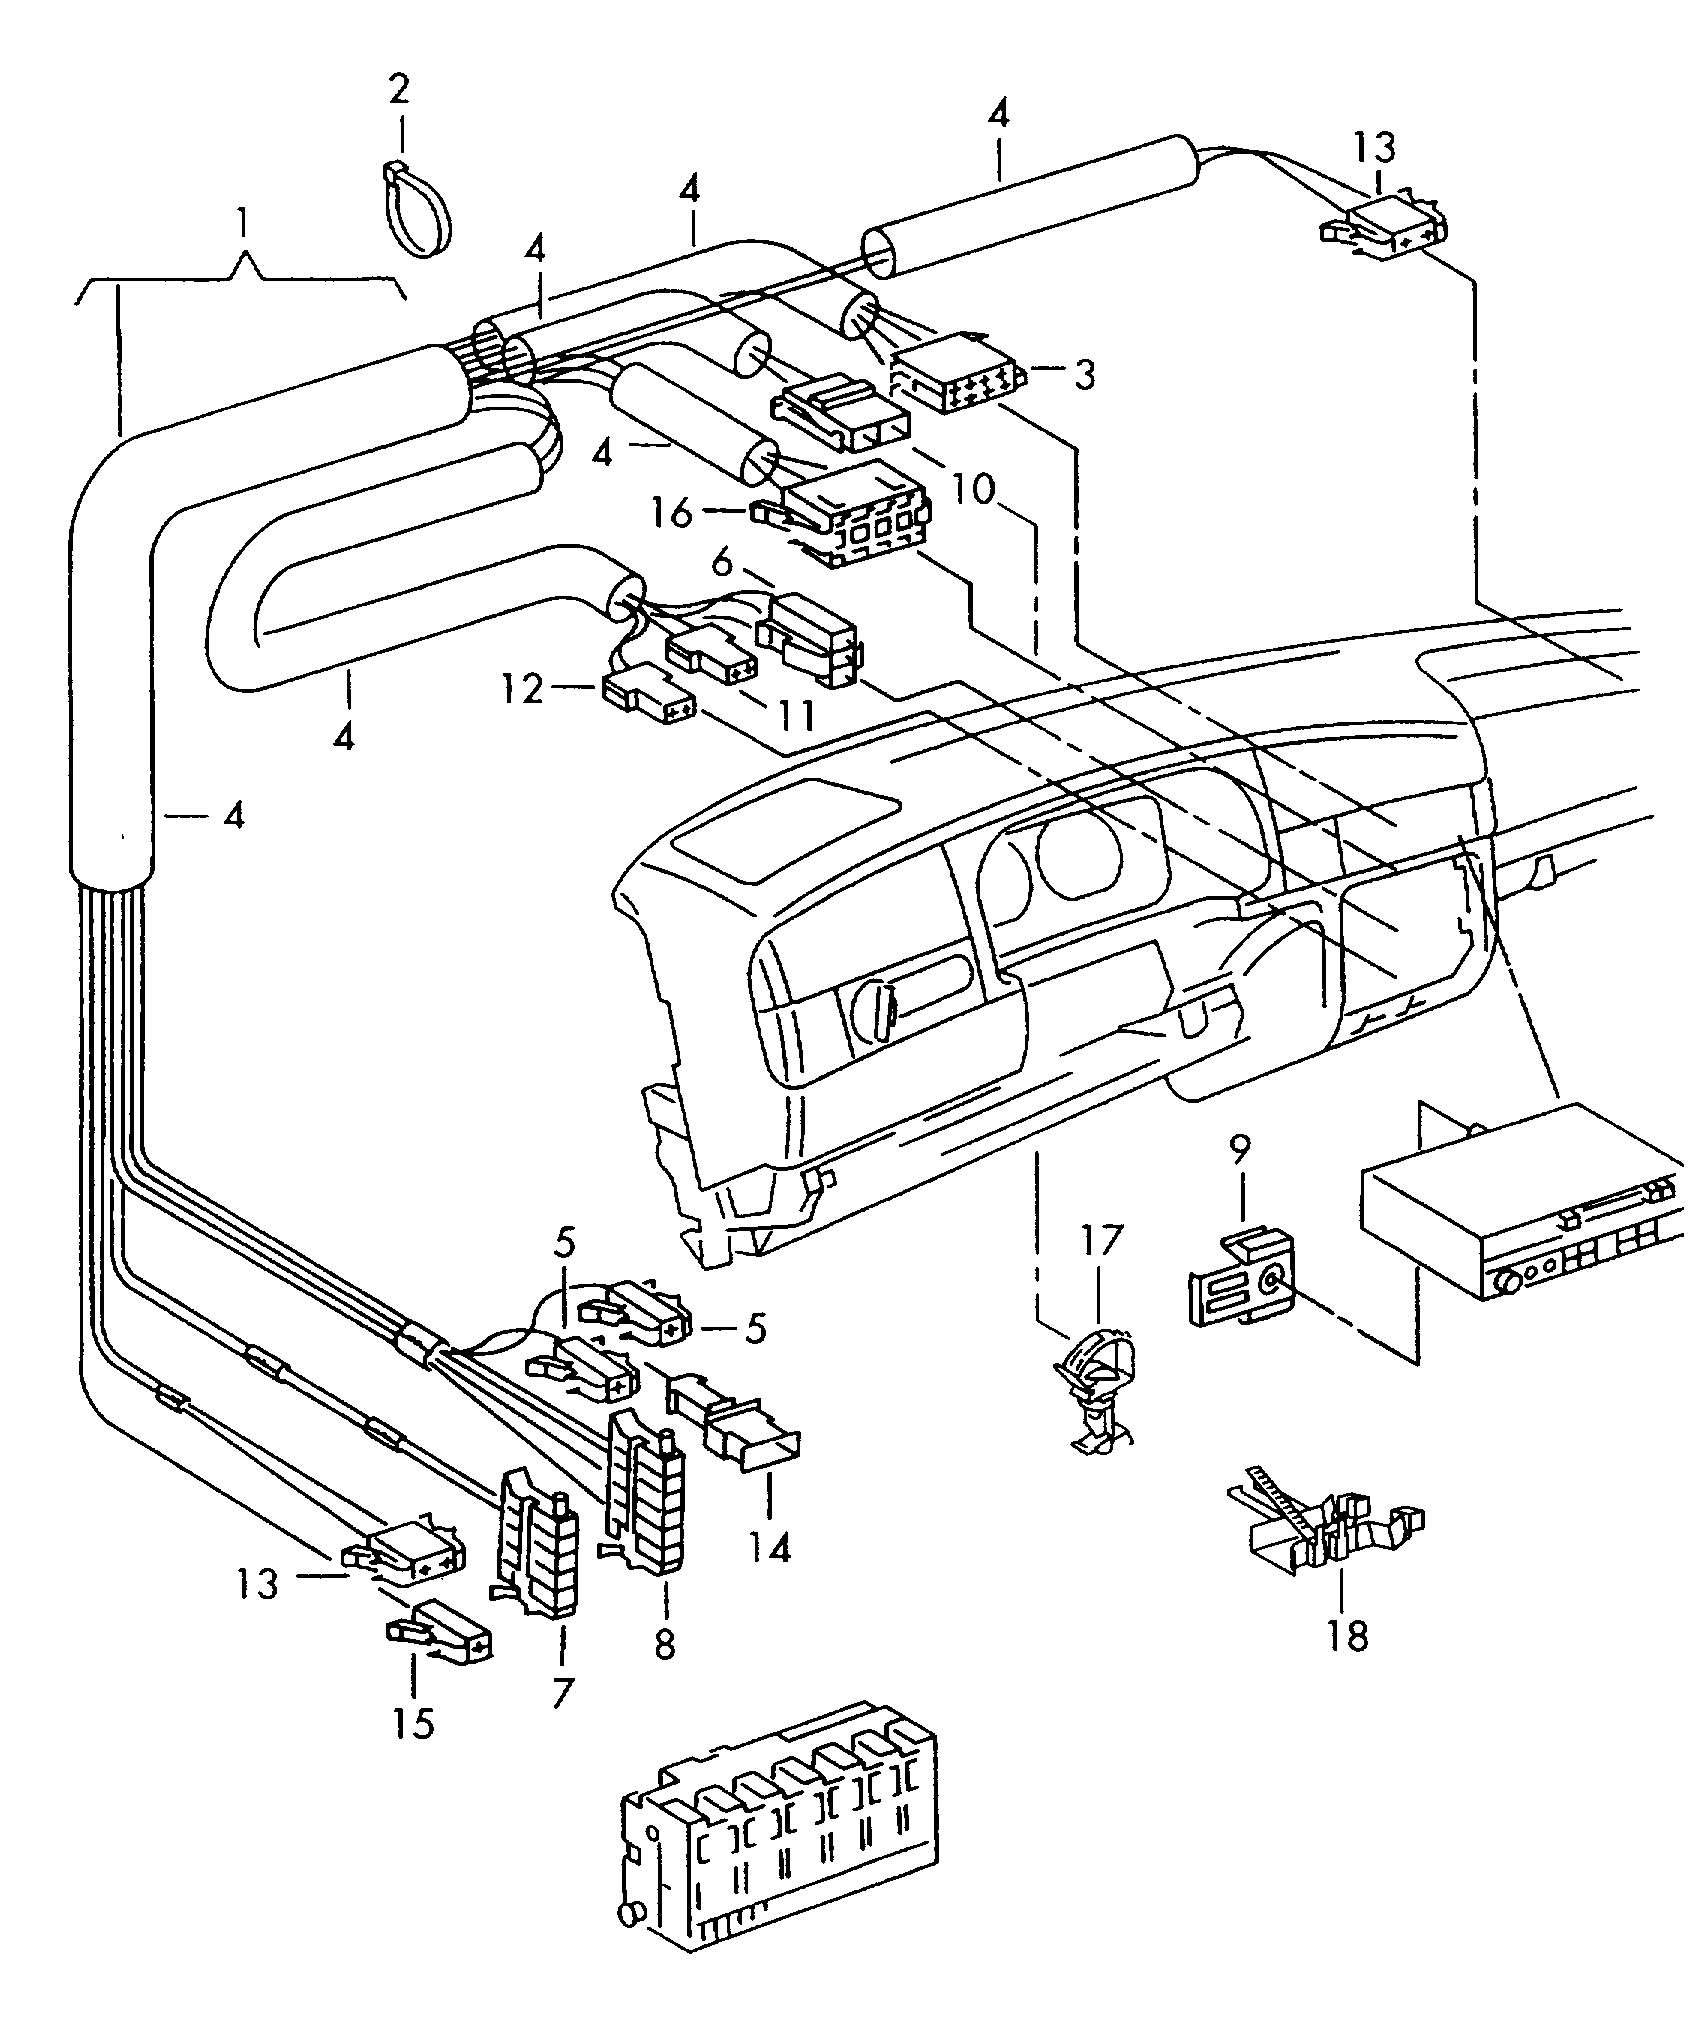 1970 Karmann Ghia Wiring Diagram Wiring Diagram And Fuse Box